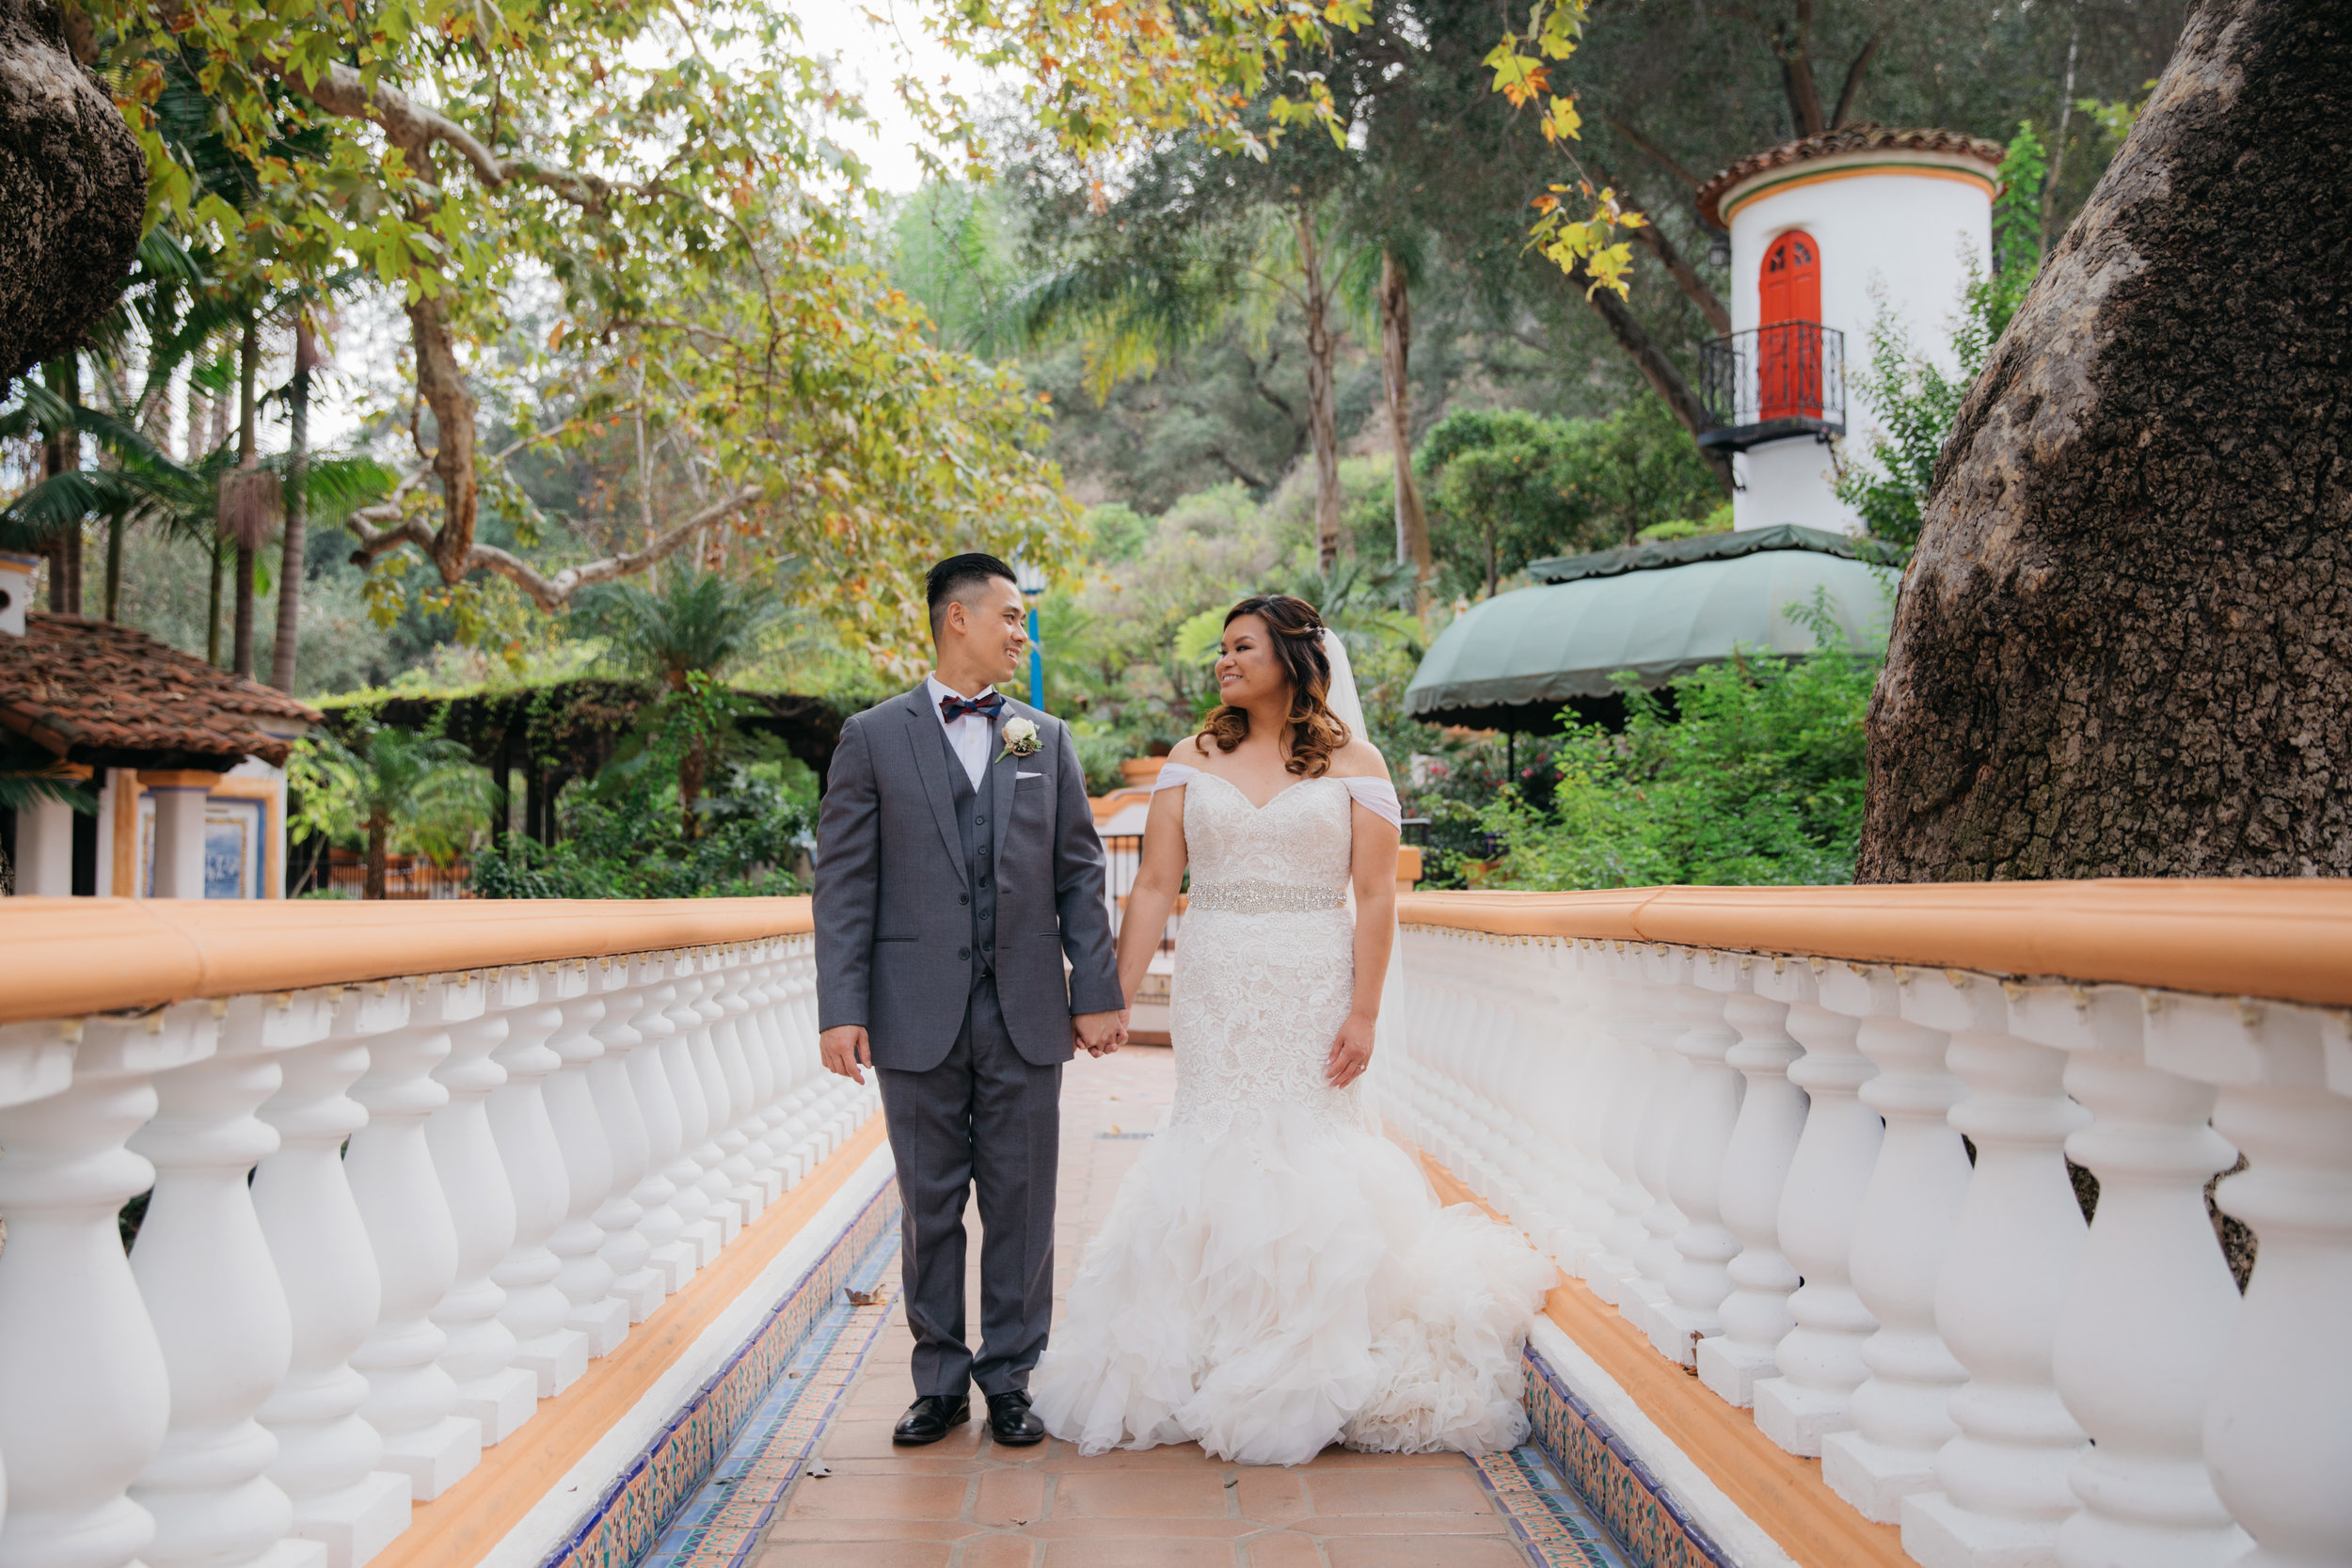 rancho-las-lomas-wedding-planner-best-wedding-planner-in-southern-california42.jpg